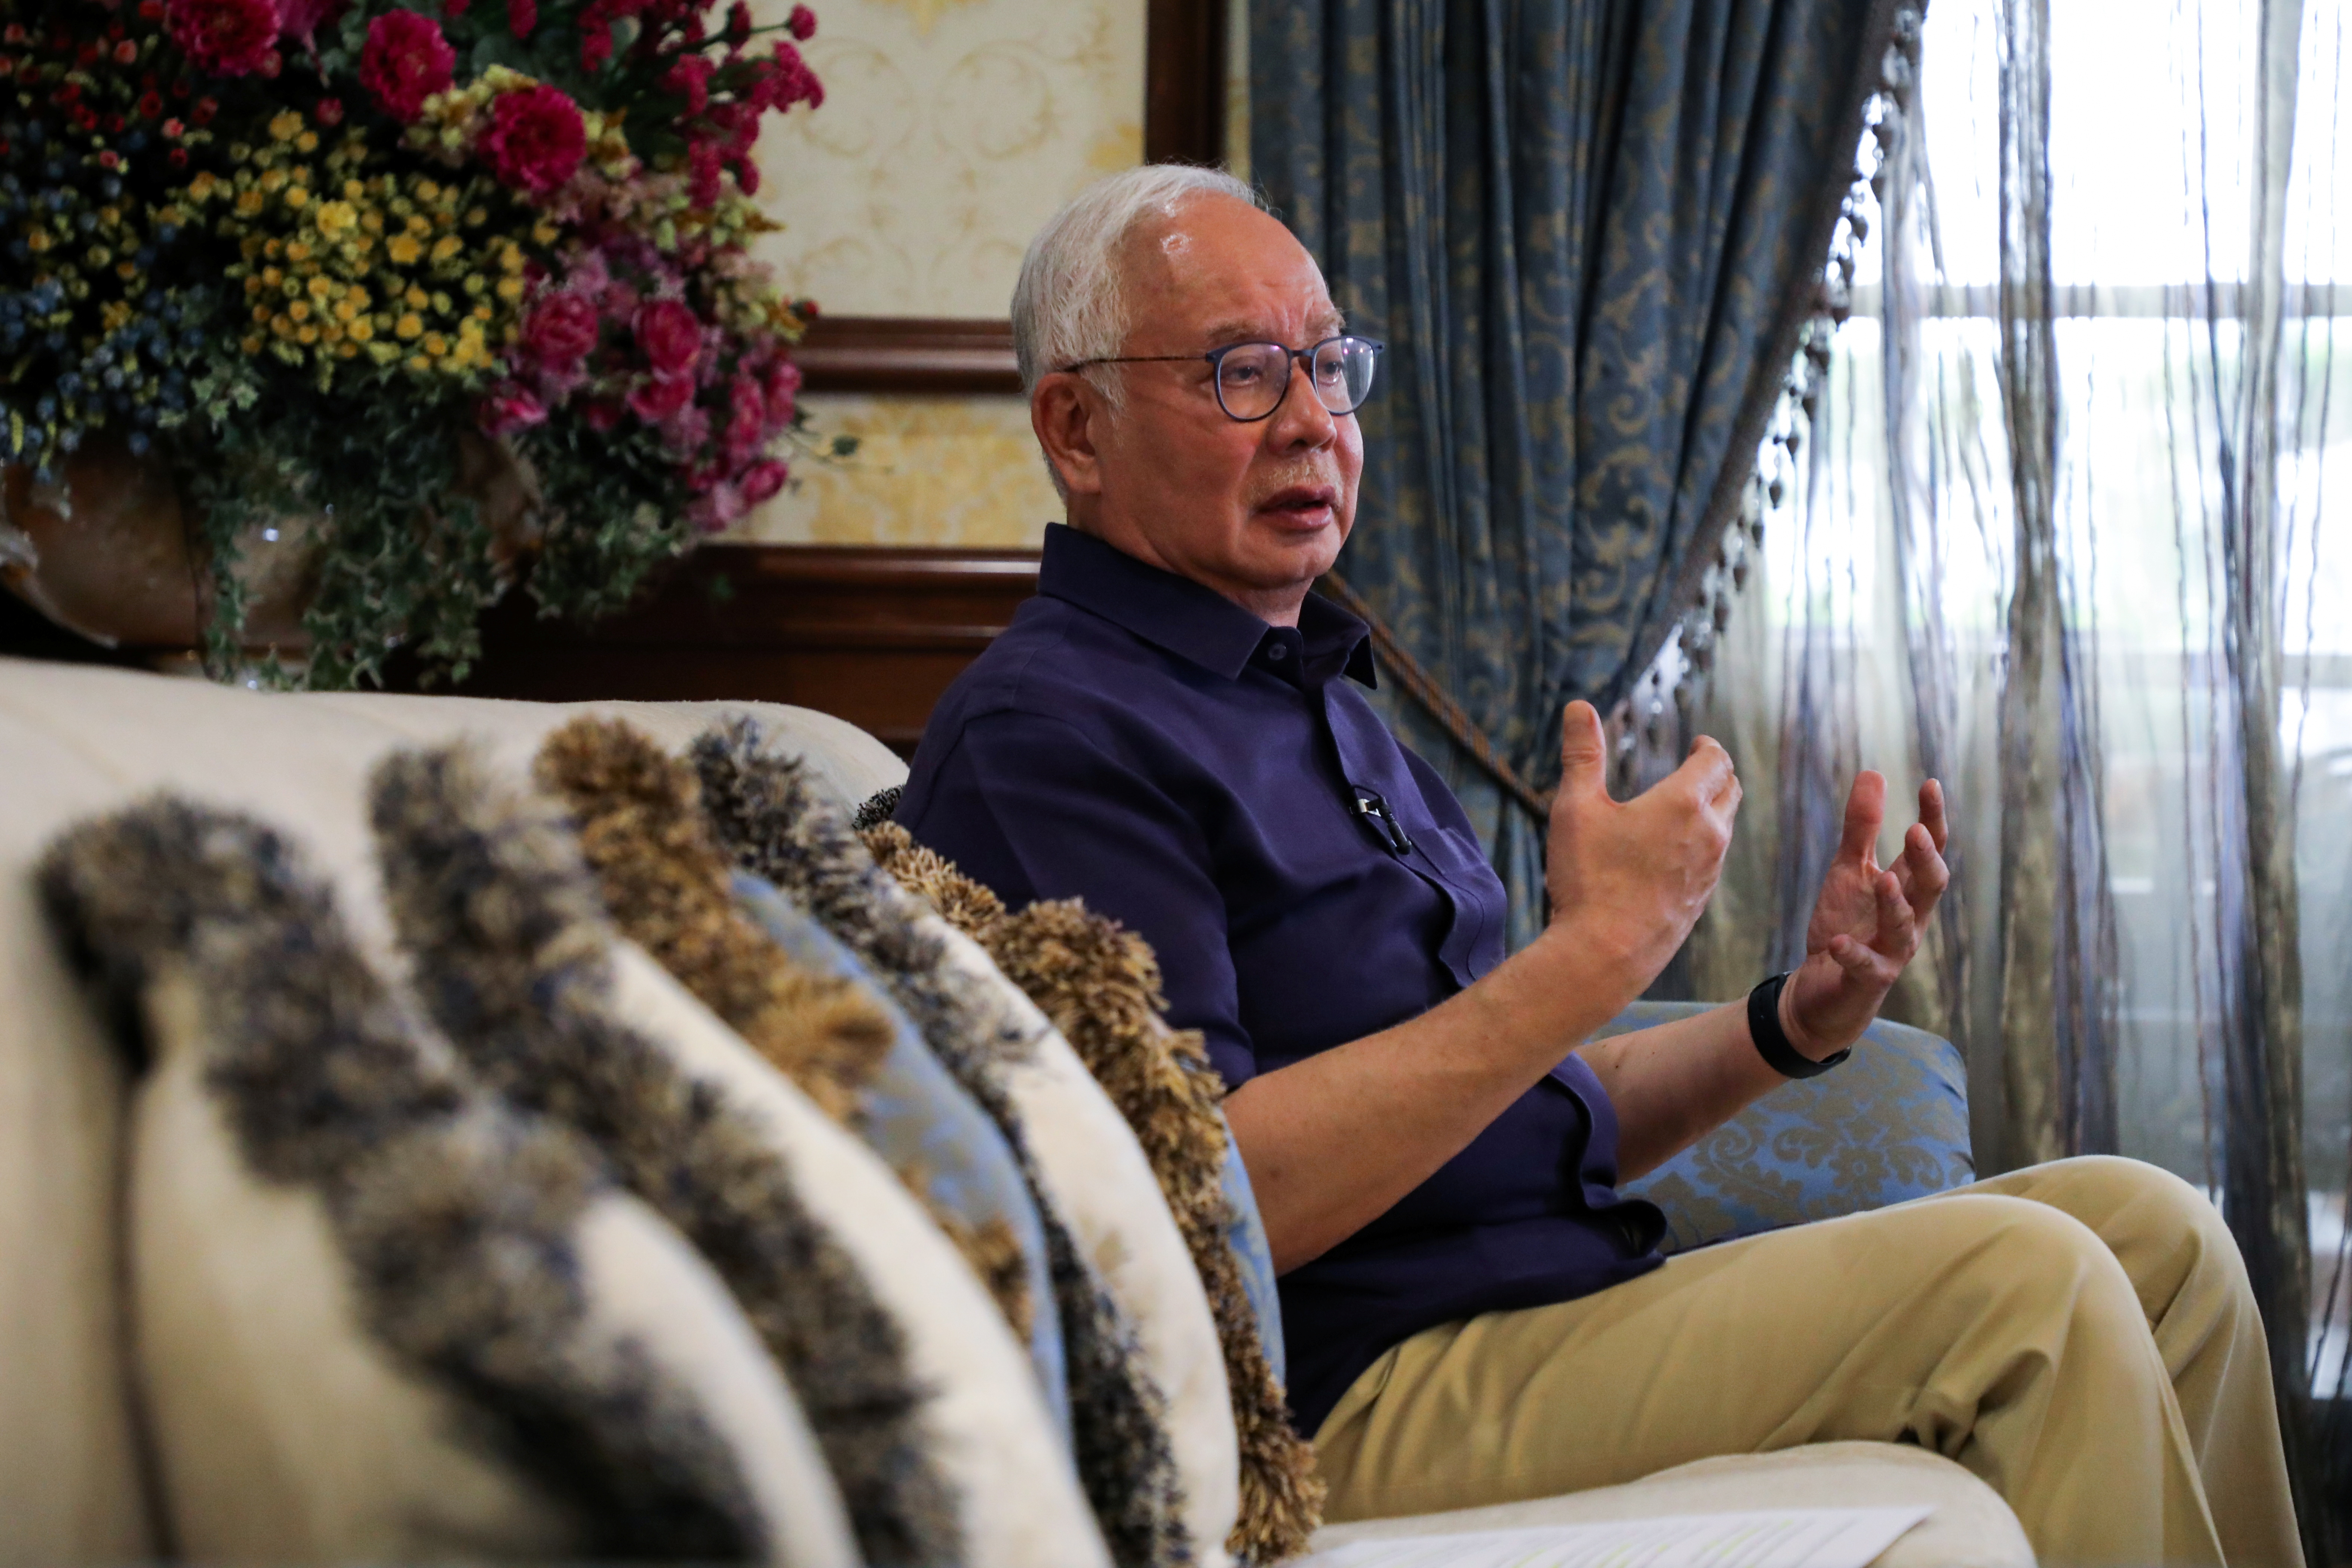 Malaysia's former Prime Minister Najib Razak speaks during an interview with Reuters in Kuala Lumpur, Malaysia September 18, 2021. REUTERS/Lim Huey Teng